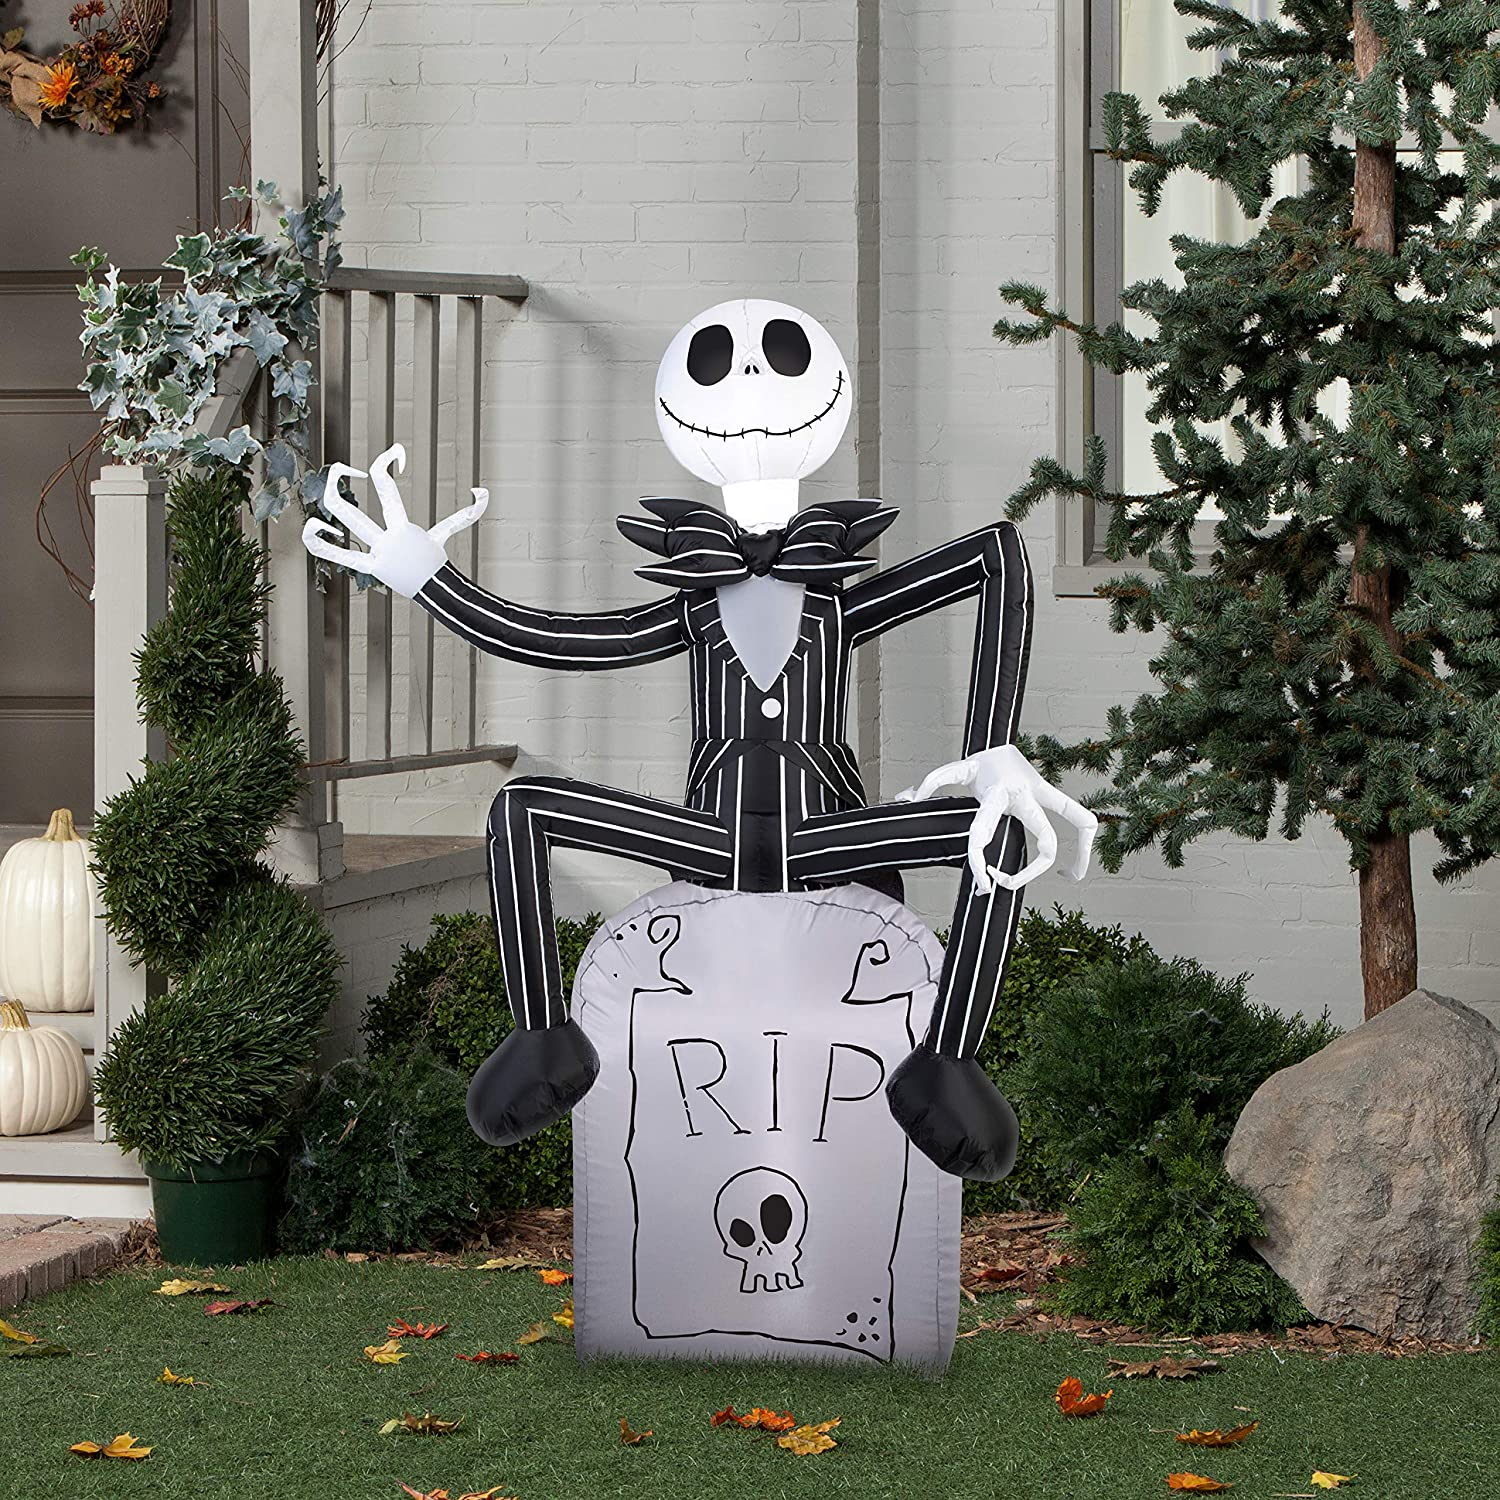 Gemmy Halloween Inflatable 5 Jack Skellington on Grave Stone Nightmare Before Christmas Prop Decoration